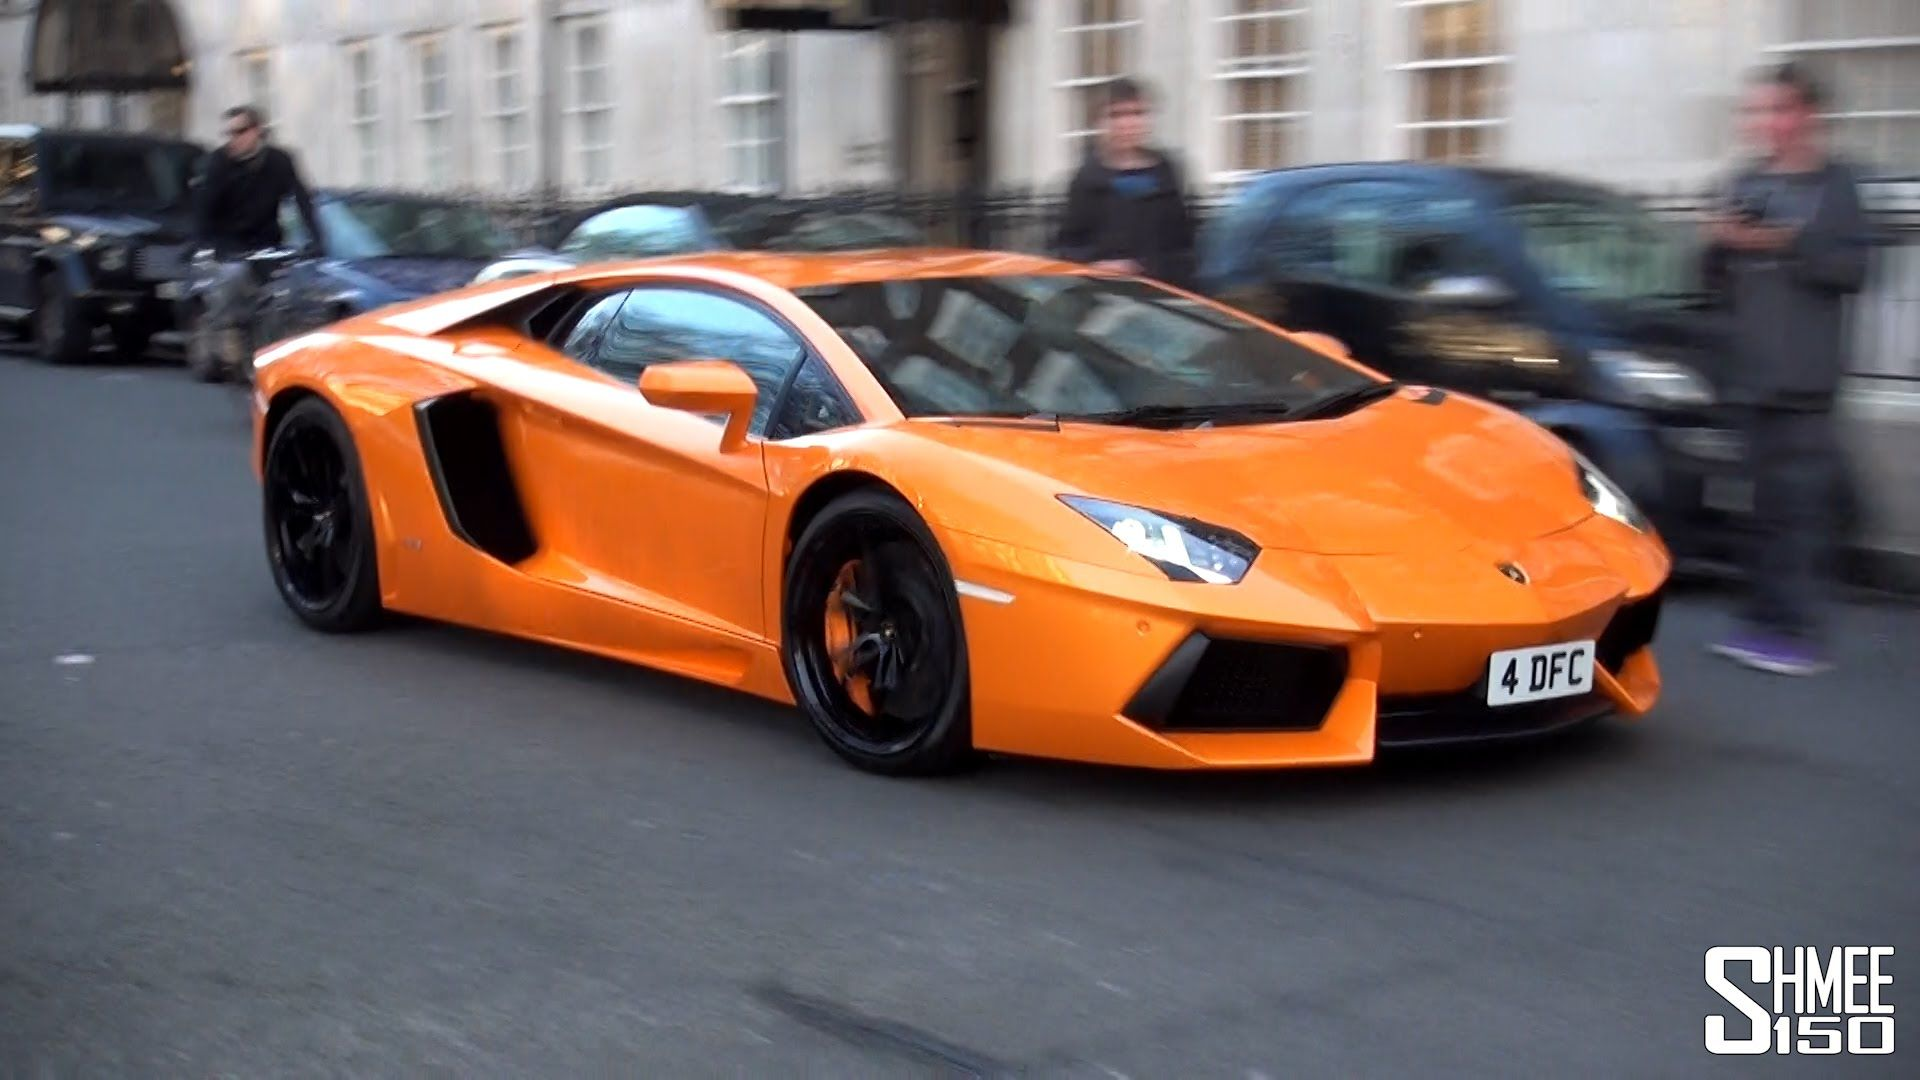 Light Orange Lamborghini Aventador Google Search Cars